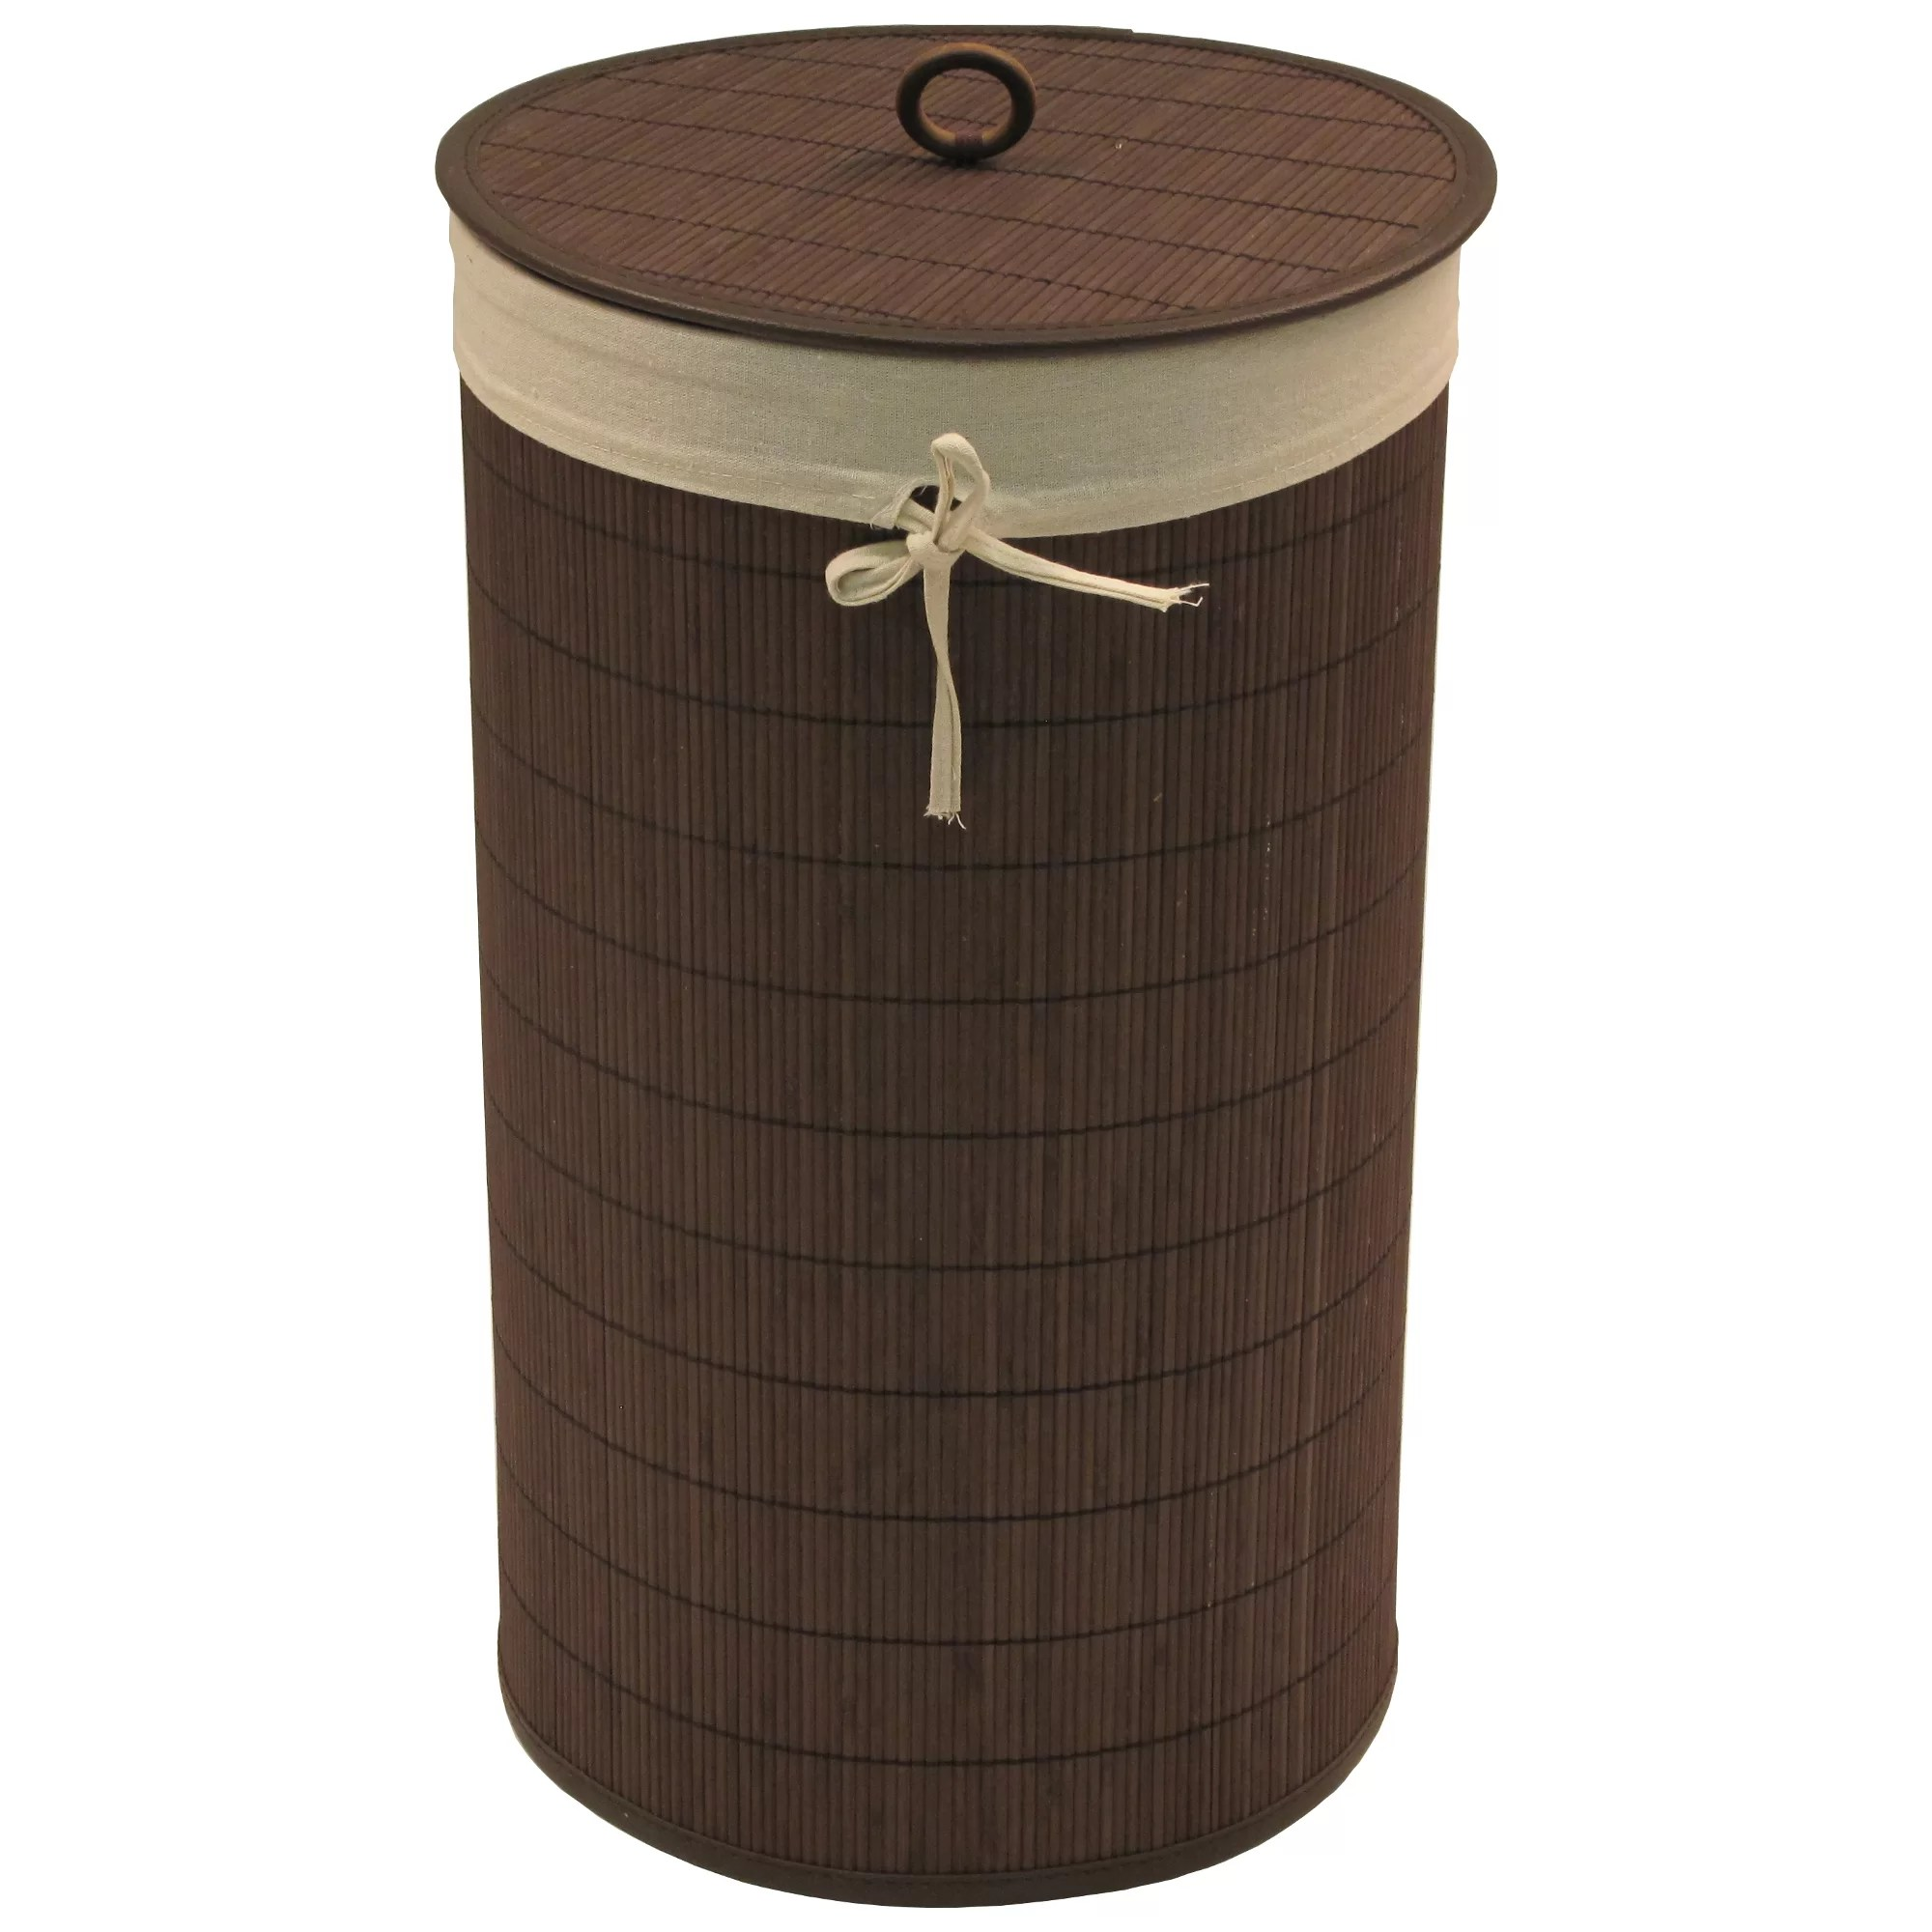 Hamper With Liner Redmon Round Bamboo Hamper With Liner And Reviews Wayfair